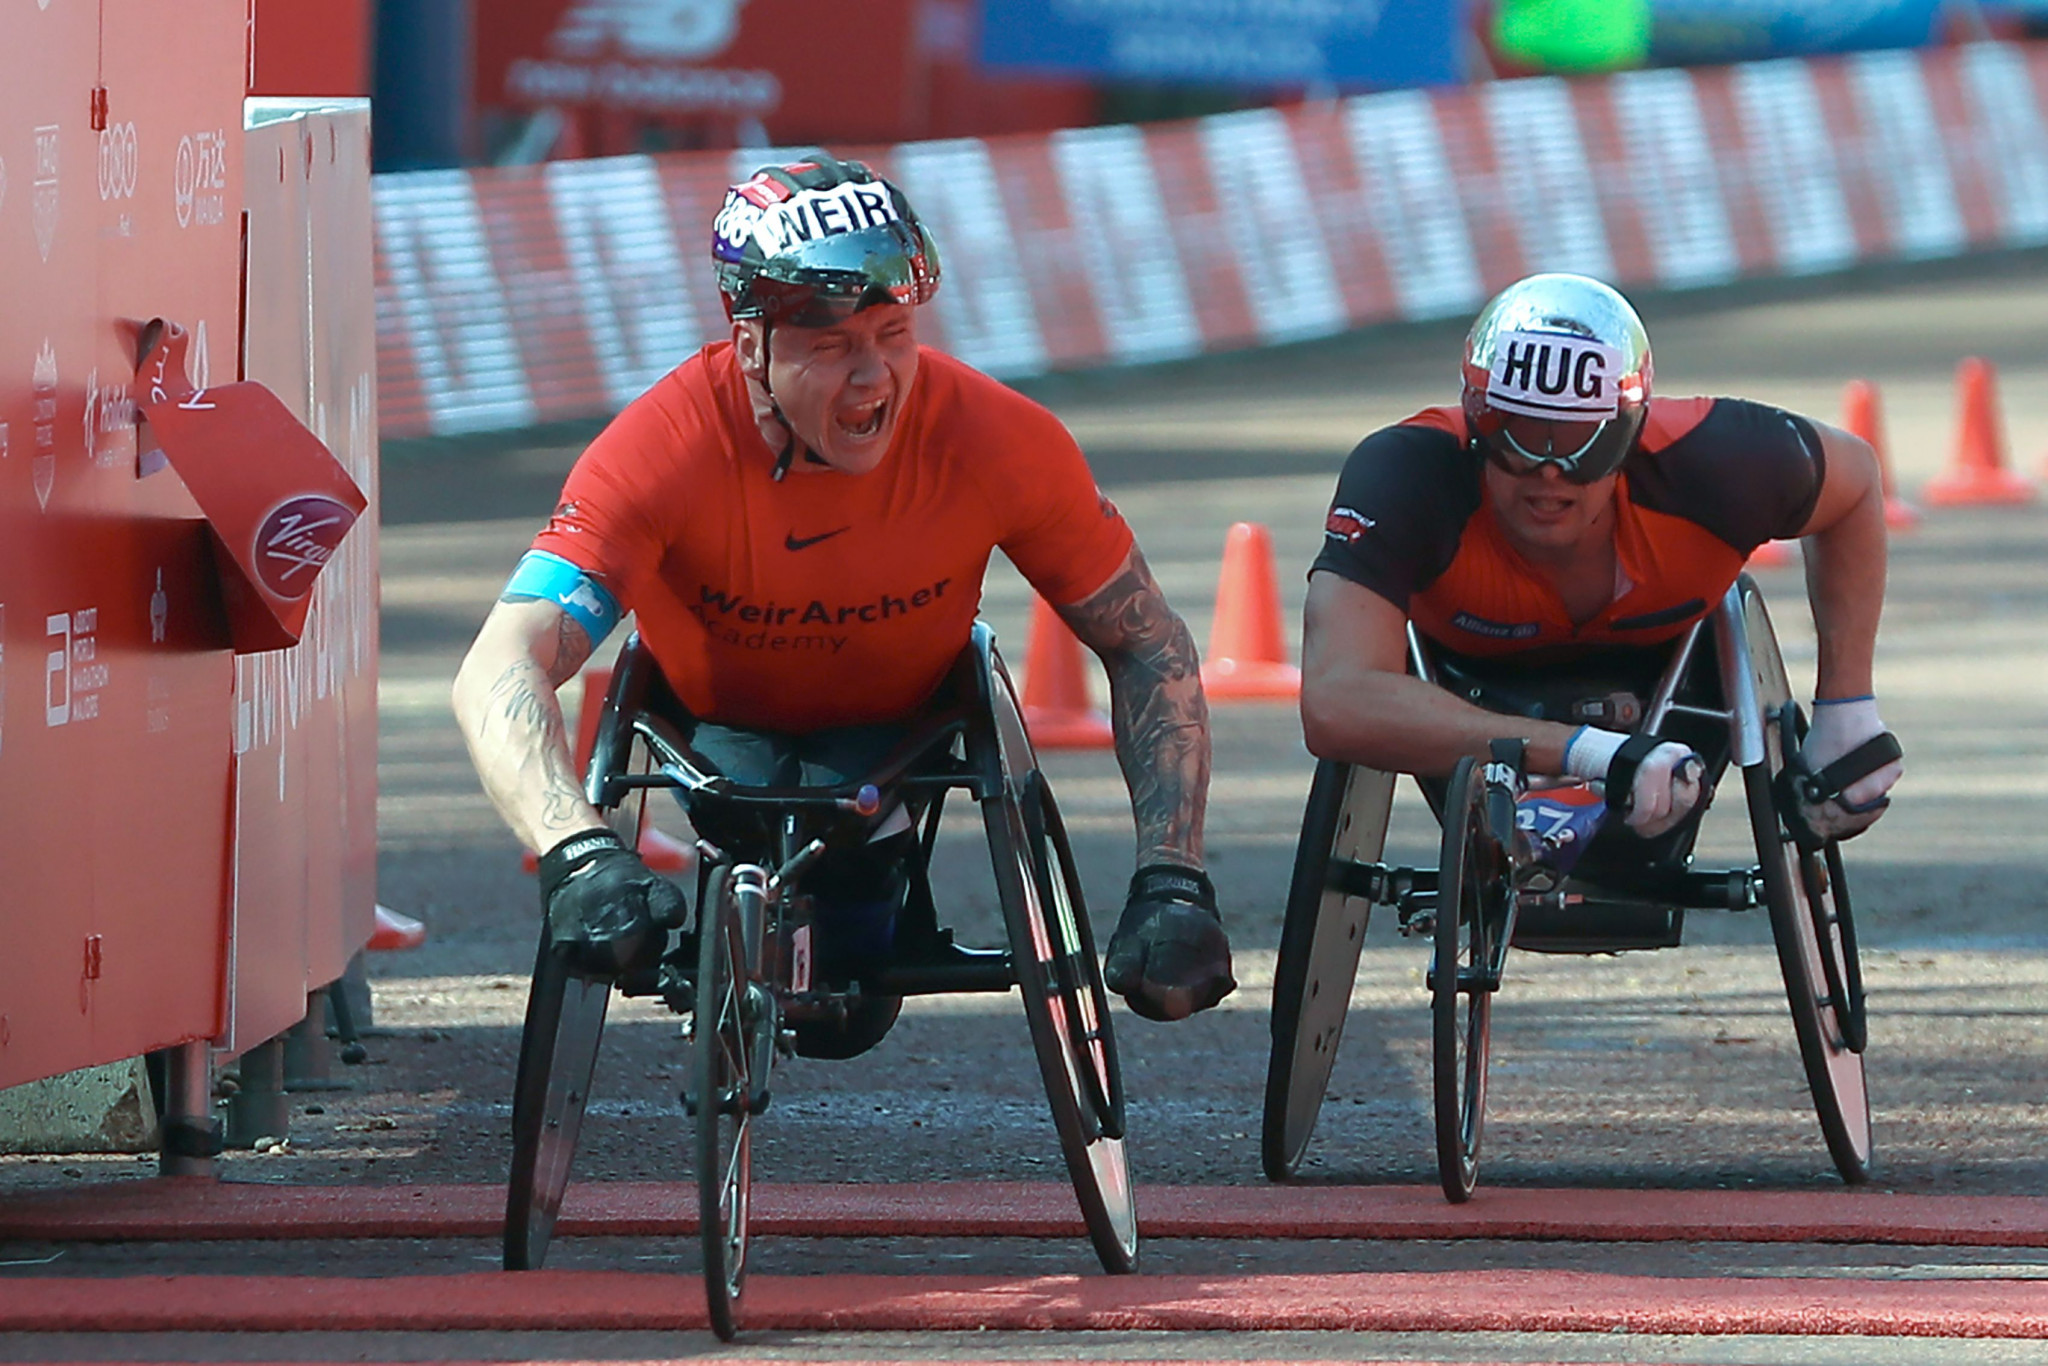 Six-time Paralympic champion Weir admits depression struggle and announces Tokyo 2020 ambitions